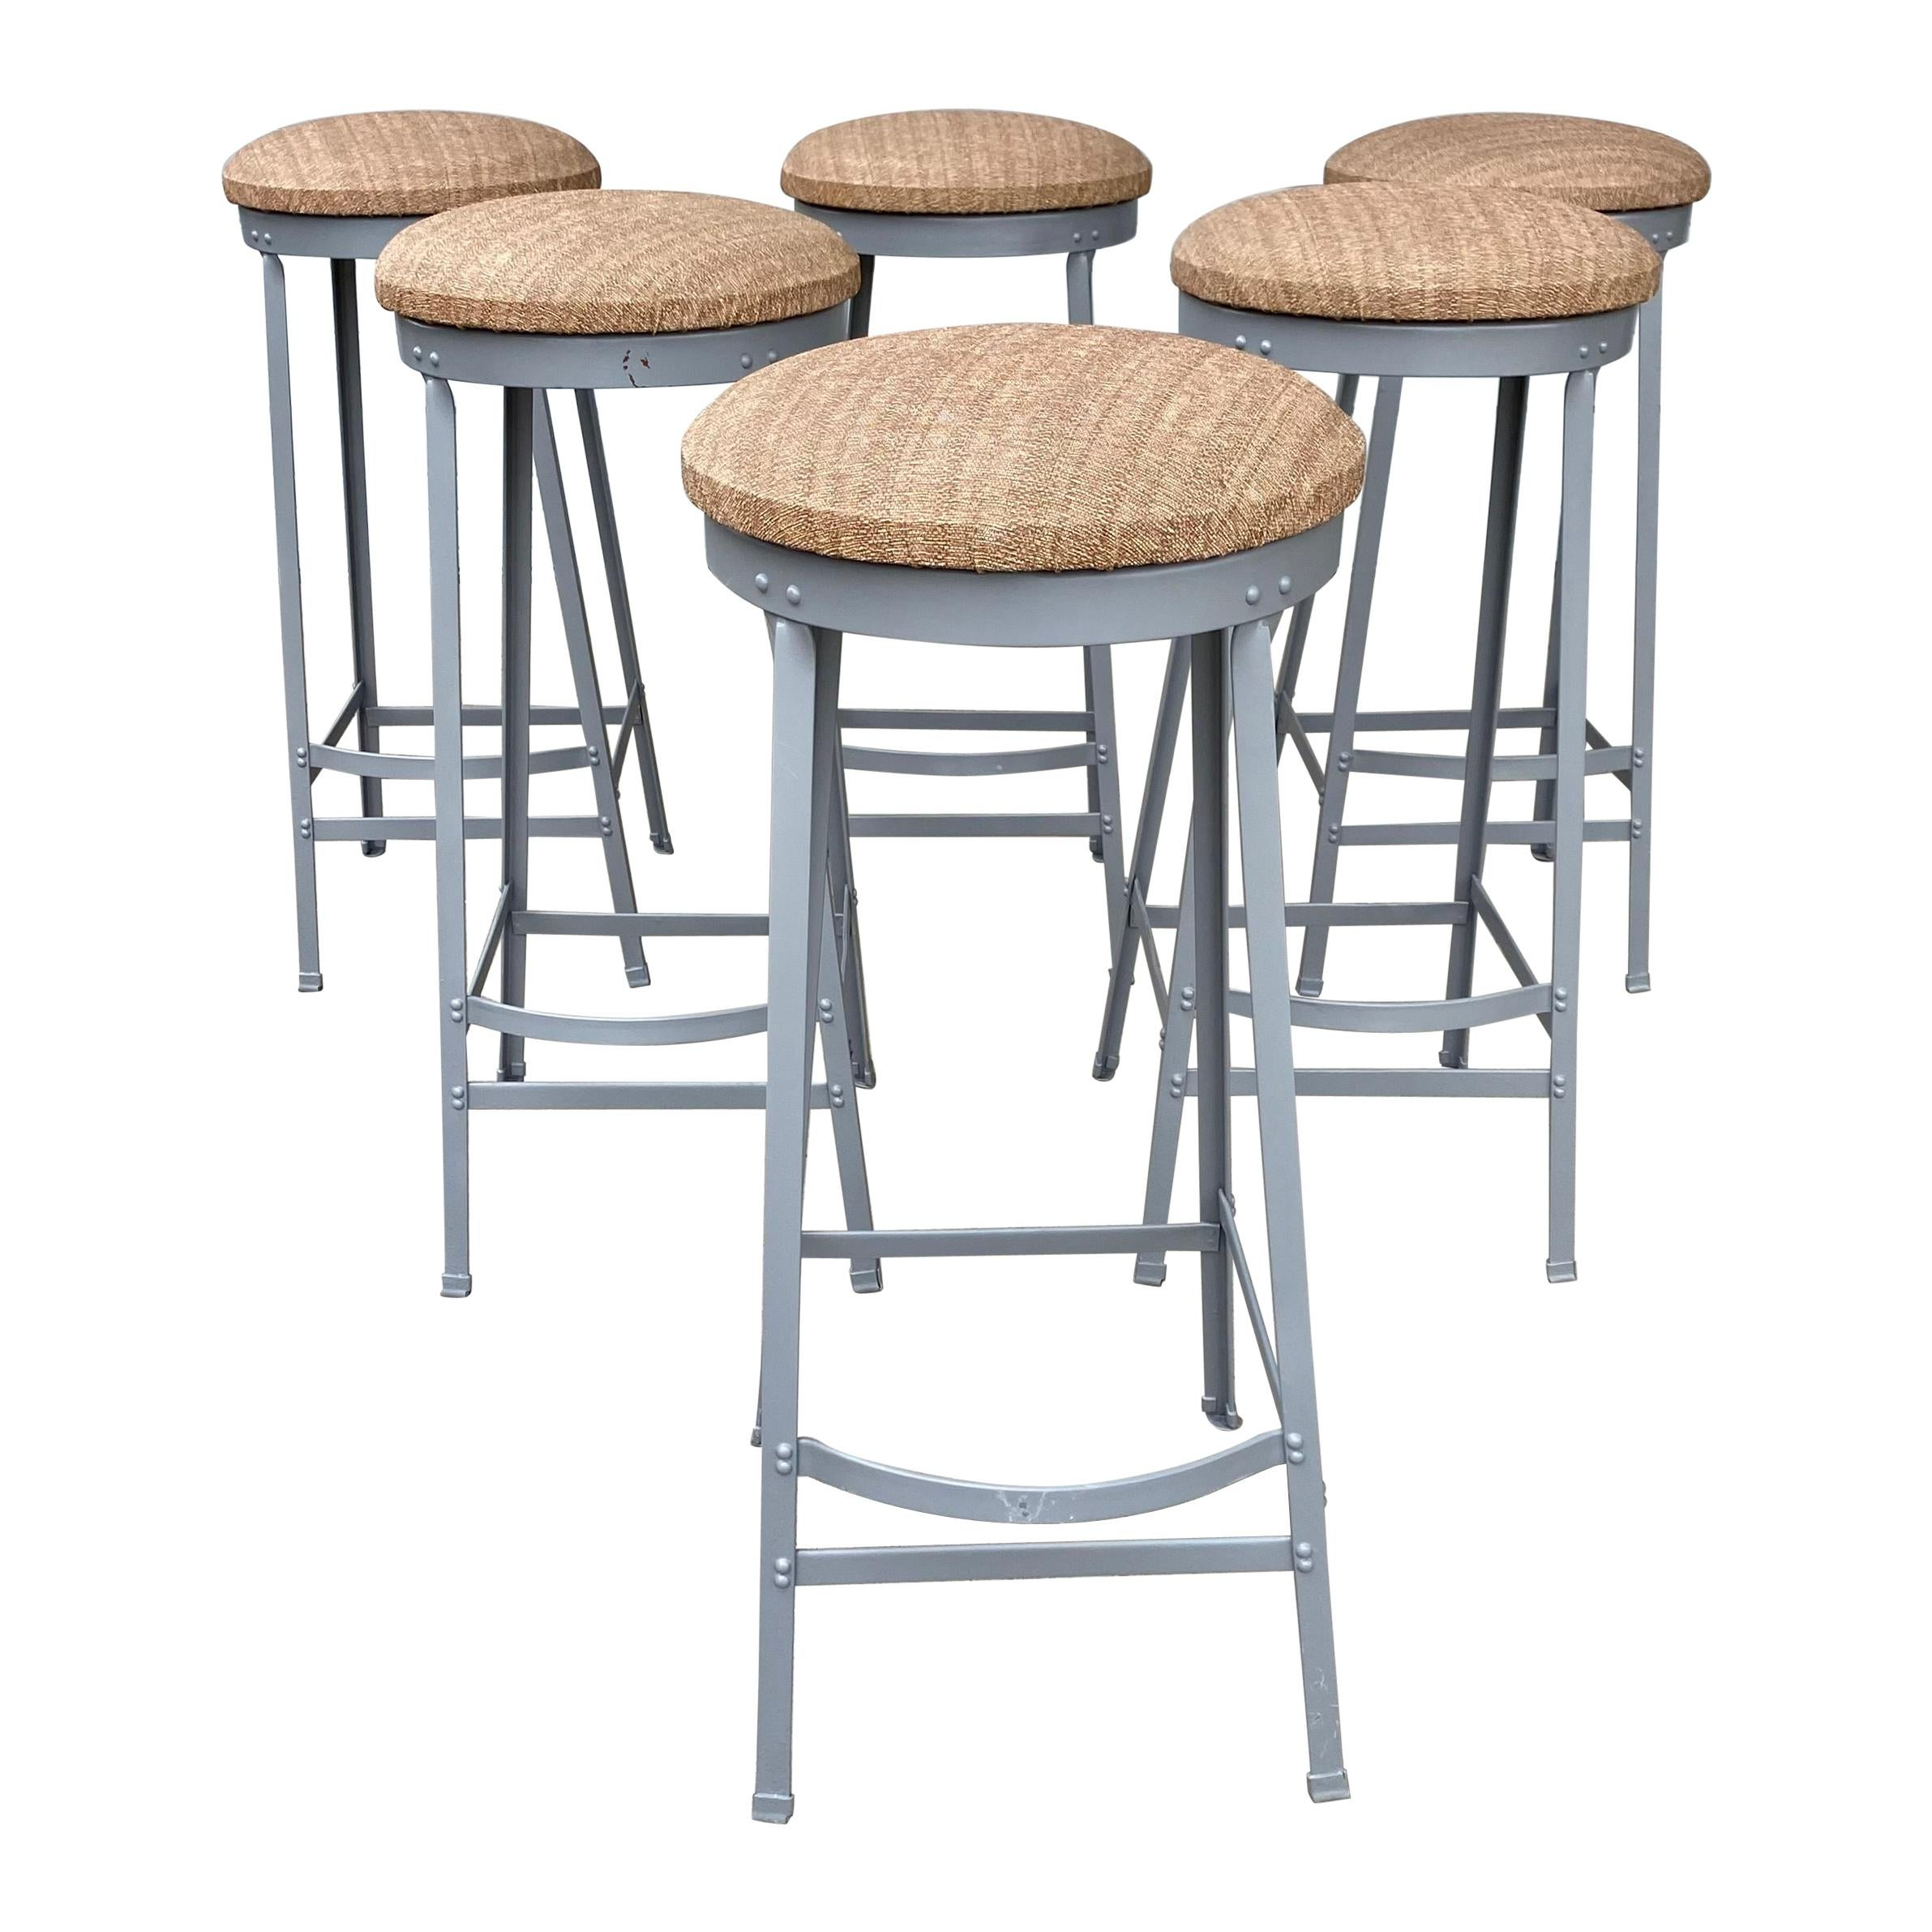 Set of Six American Industrial Bar Stools, Attributed to Toledo Metal Furniture